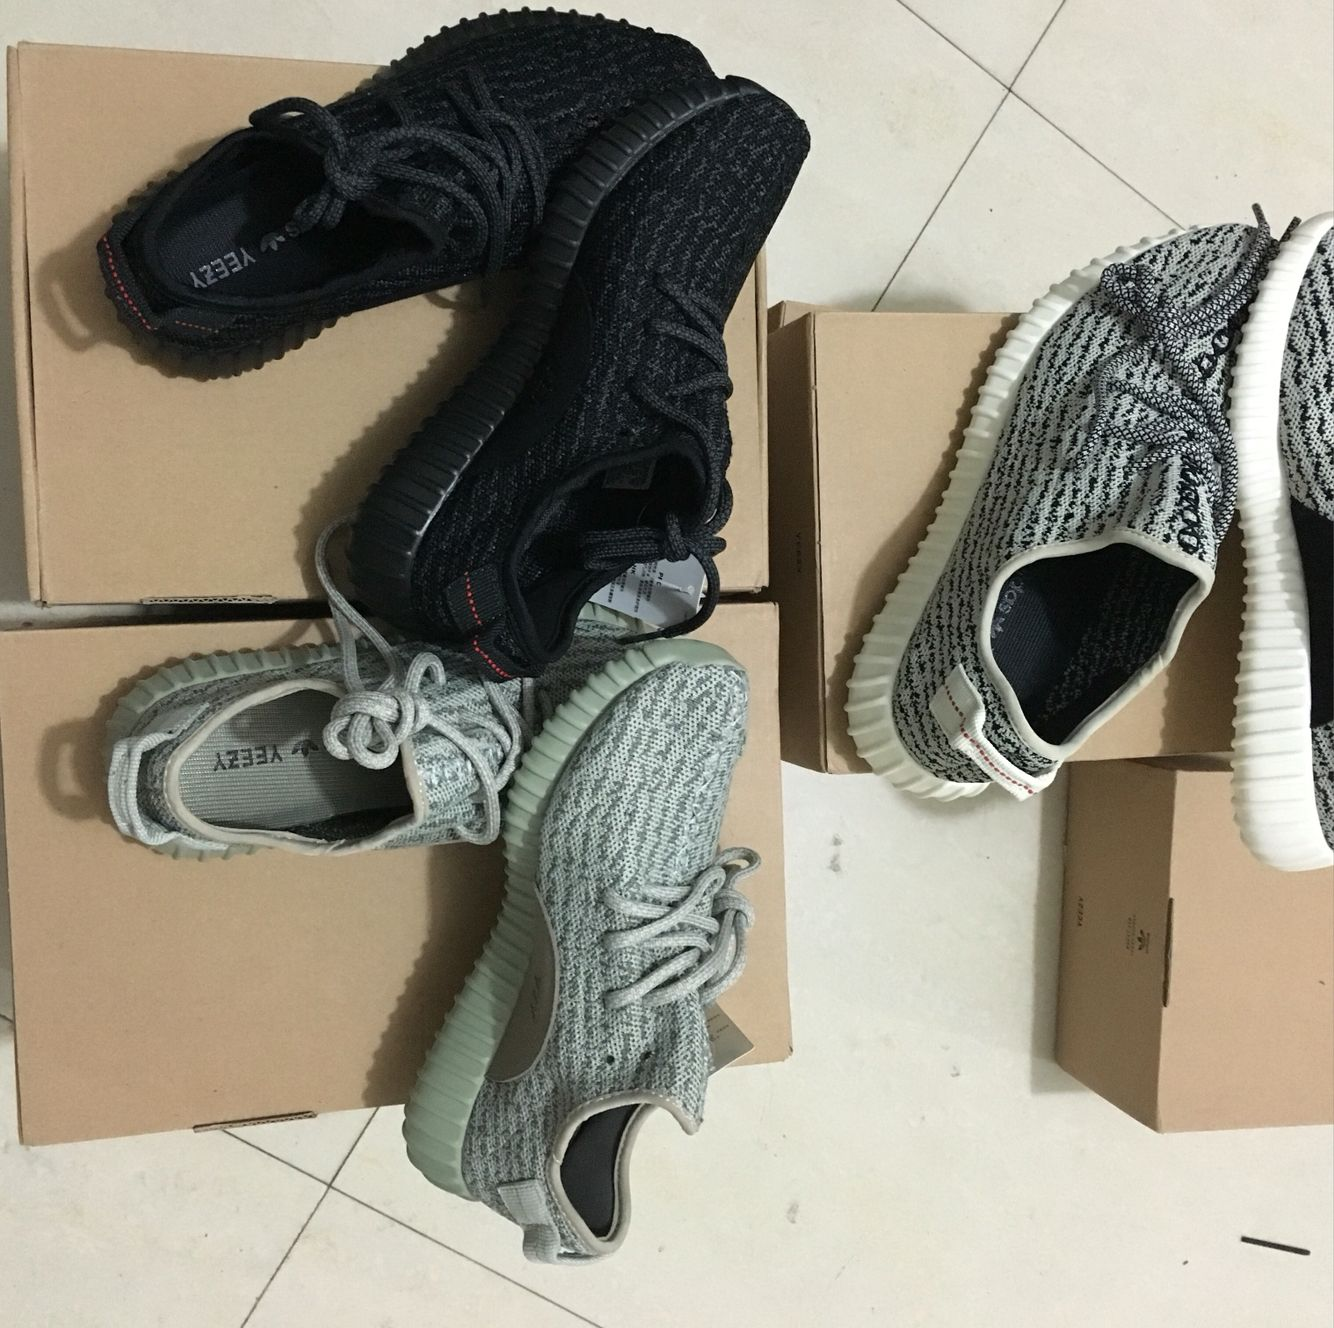 yeezy boost shoes oxford tan adidas clothing discounted